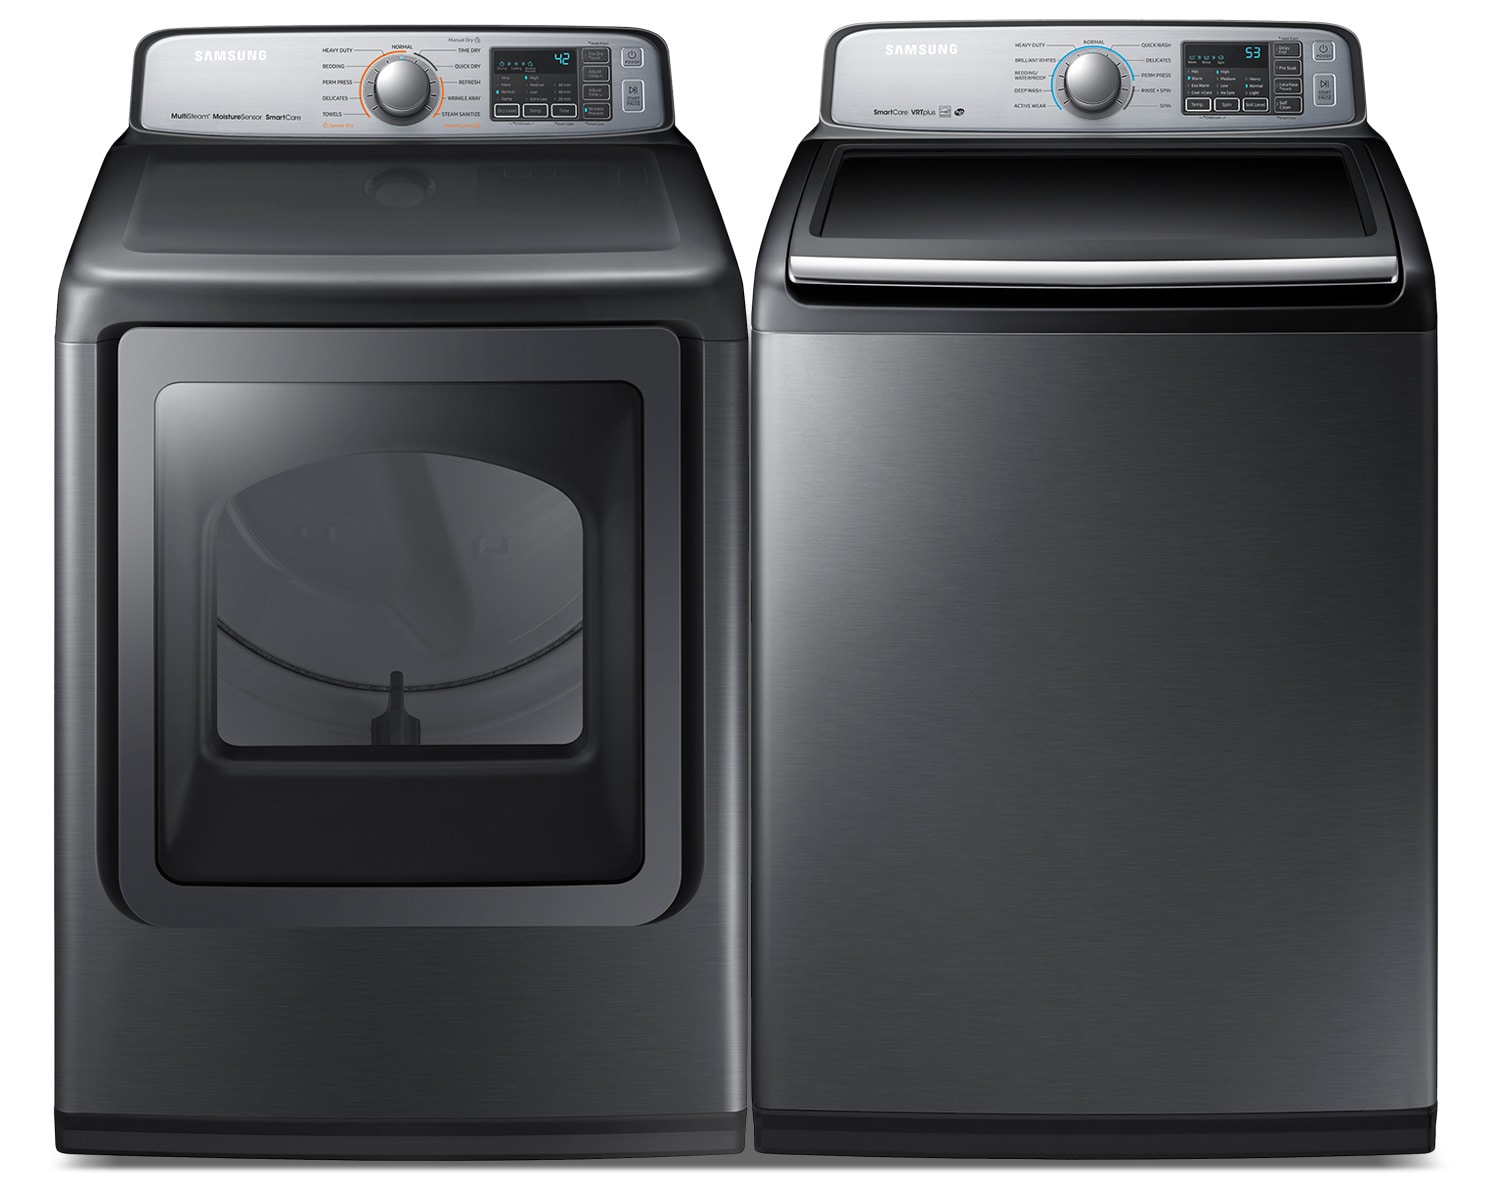 Kitchen small appliances edmonton - Samsung Laundry Wa50m7450ap Dve50m7450p Ac